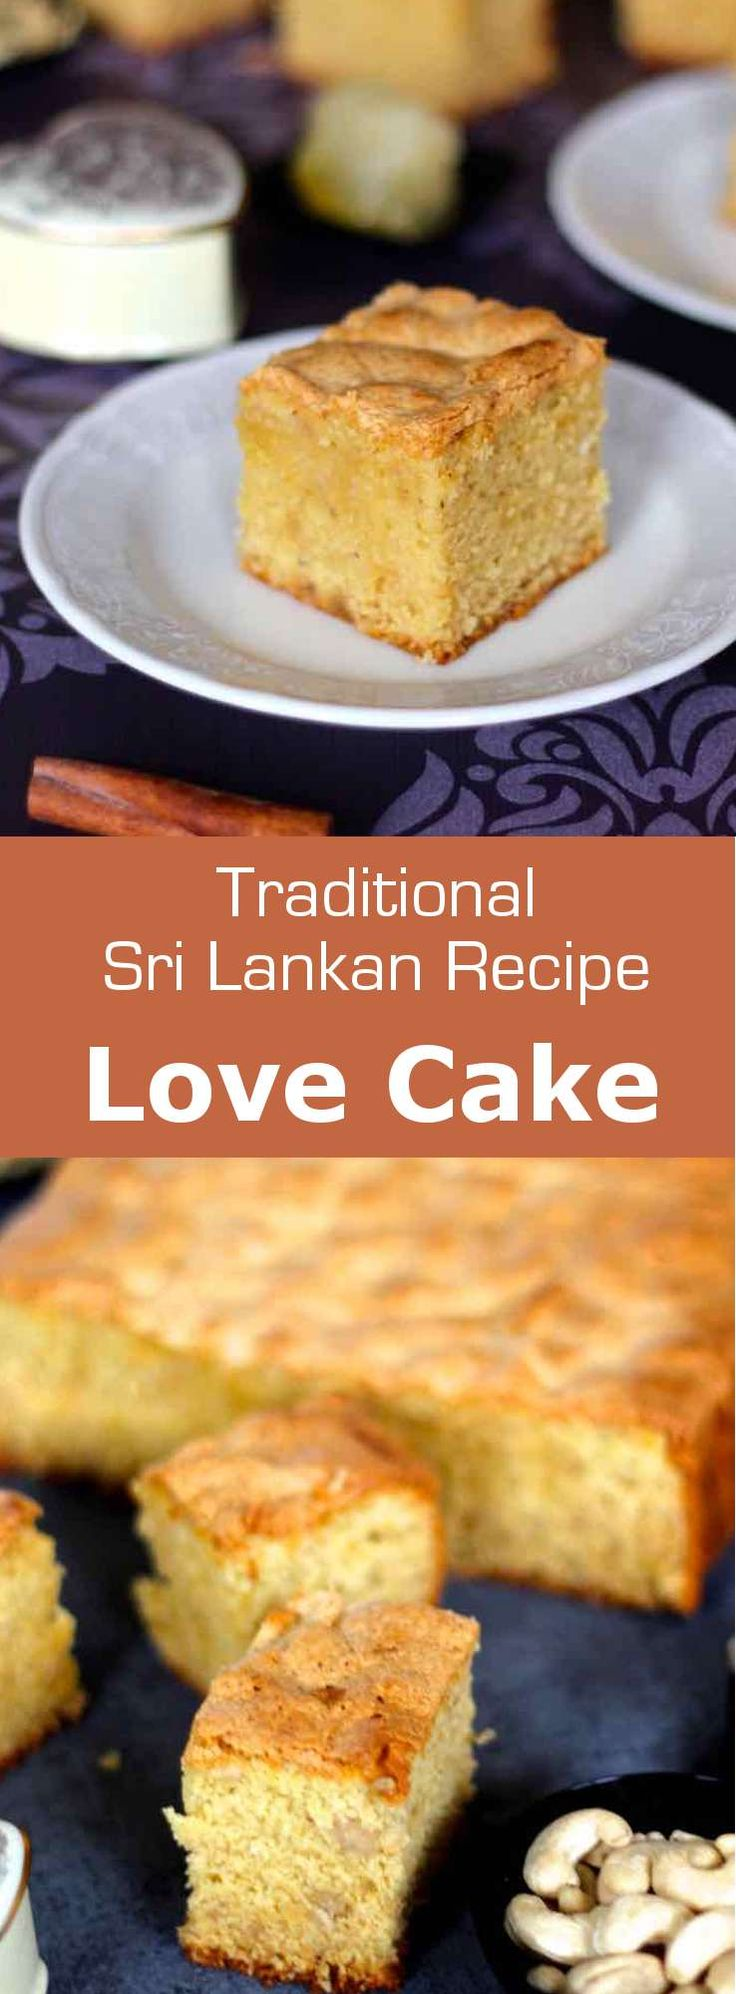 The love cake is a traditional Sri Lankan cake made from cashews, semolina and candied winter melon called puhul dosi. It is perfumed with rose, cinnamon, cardamom with lime and nutmeg.  #SriLanka #SriLankanCuisine #SriLankanCake #Cake #CakeRecipe #SriLankanRecipe #WorldCuisine #196flavors via @196flavors